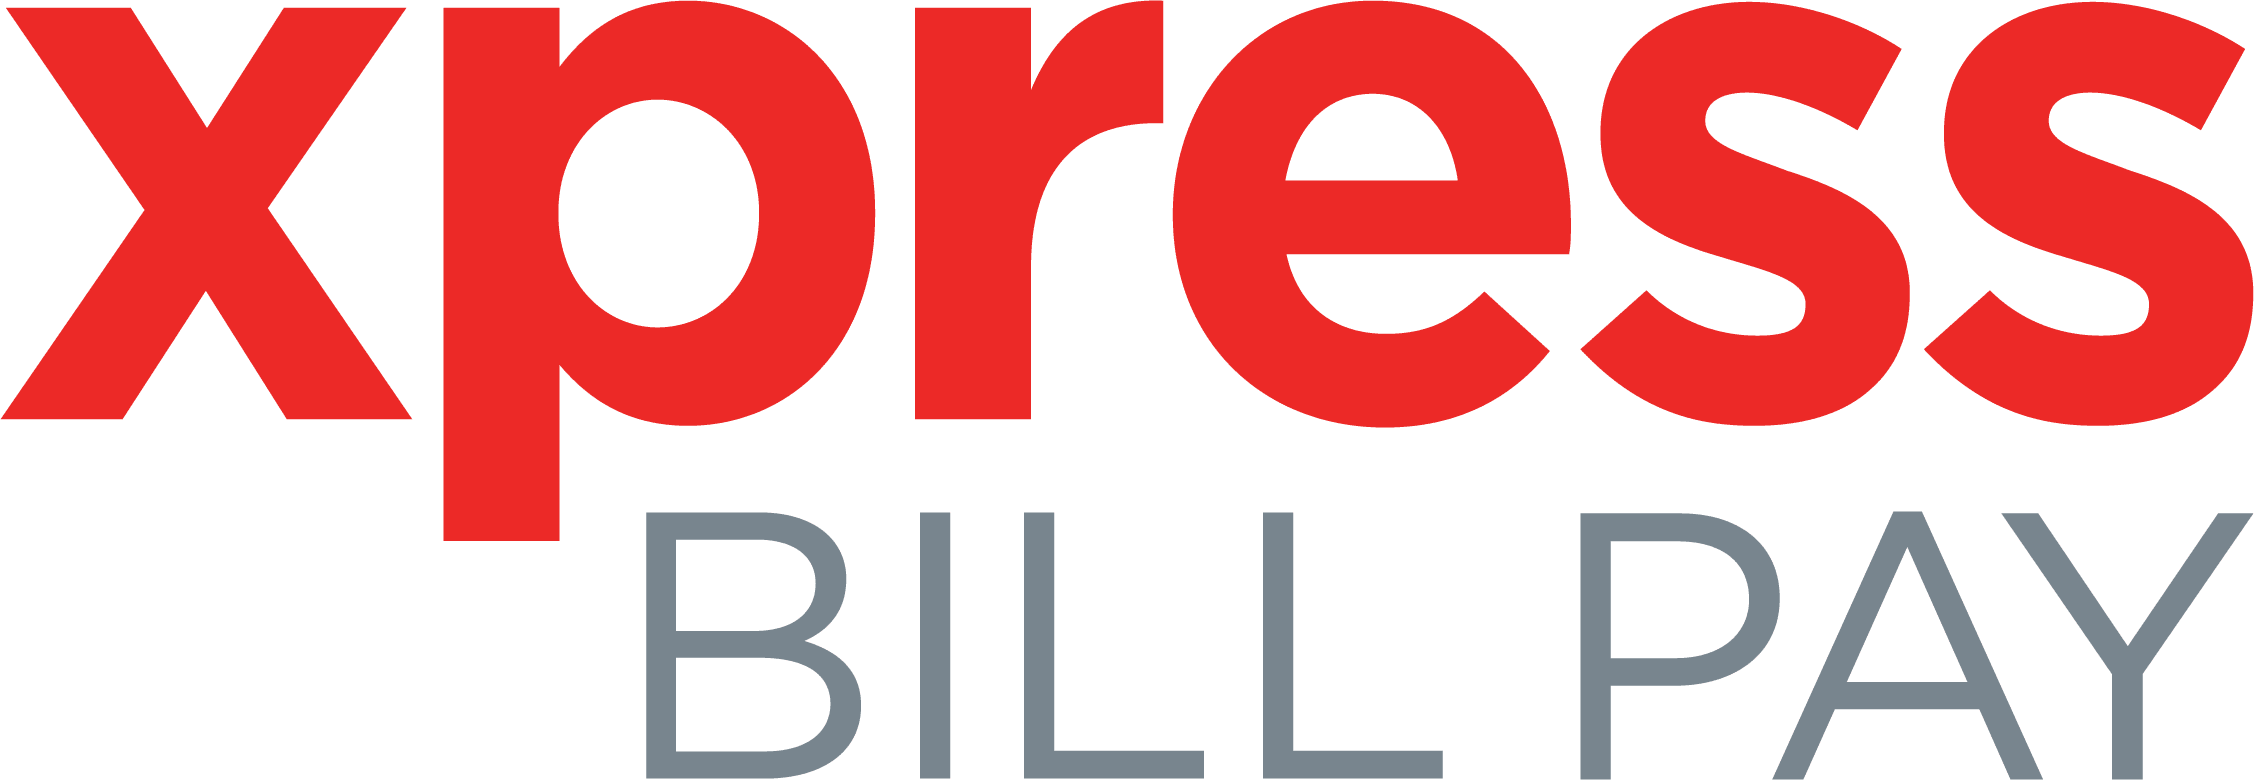 xpress bill pay